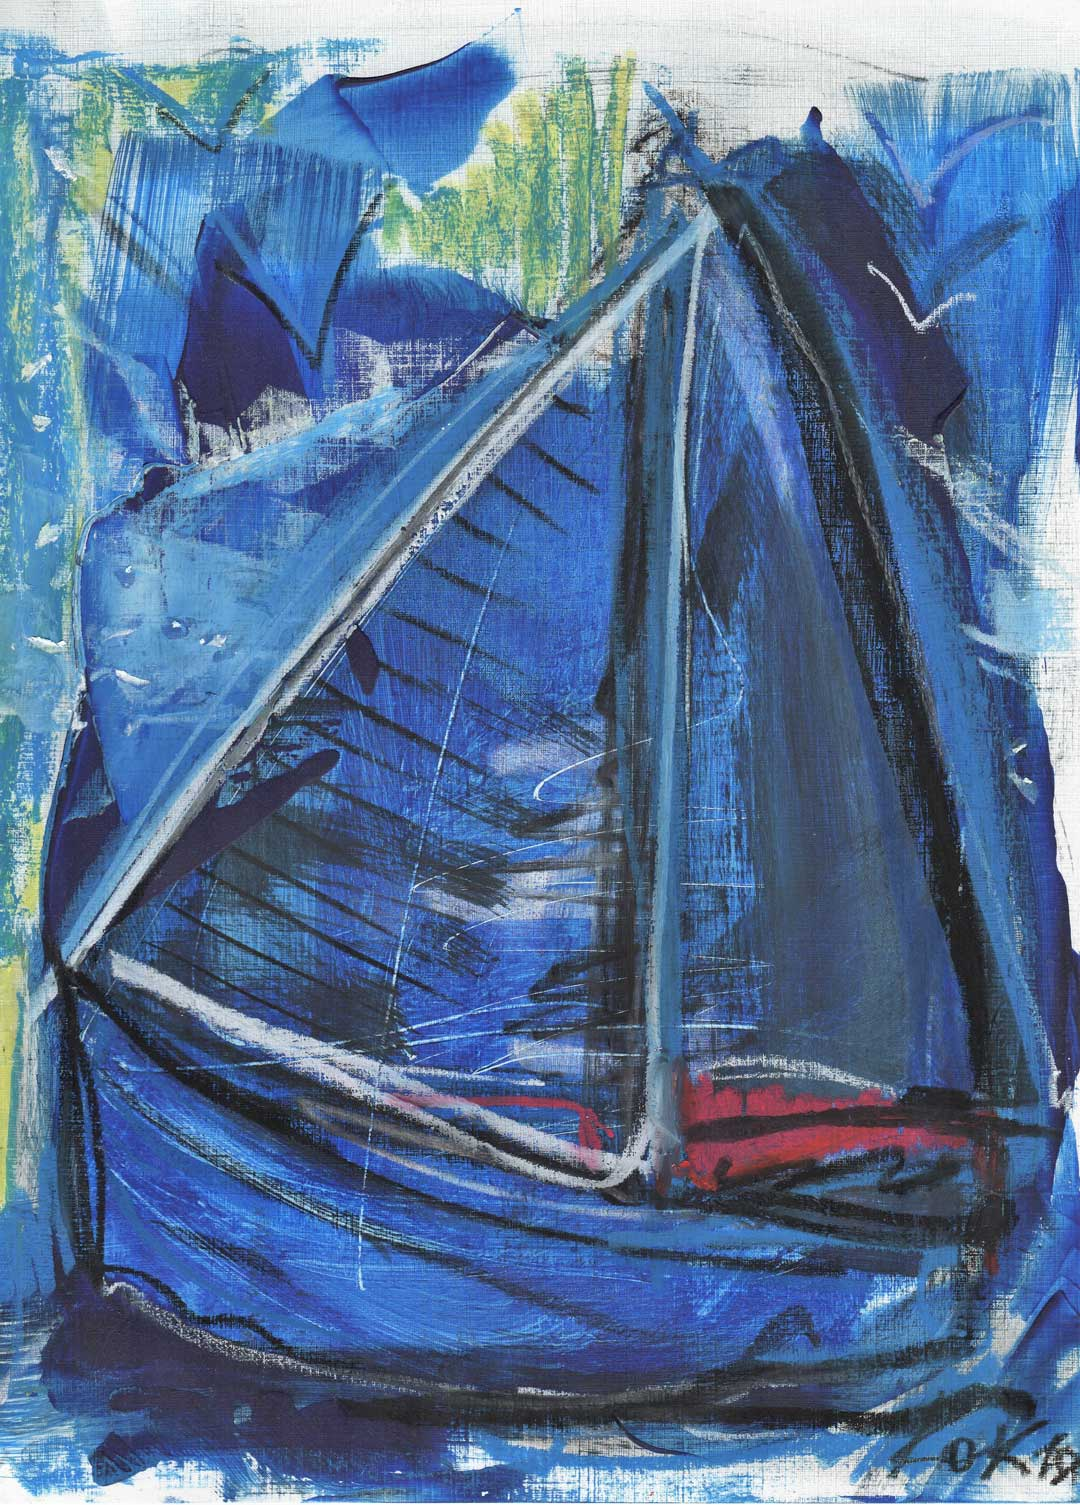 4 birds and boats cycle kim okura KOK painting blue